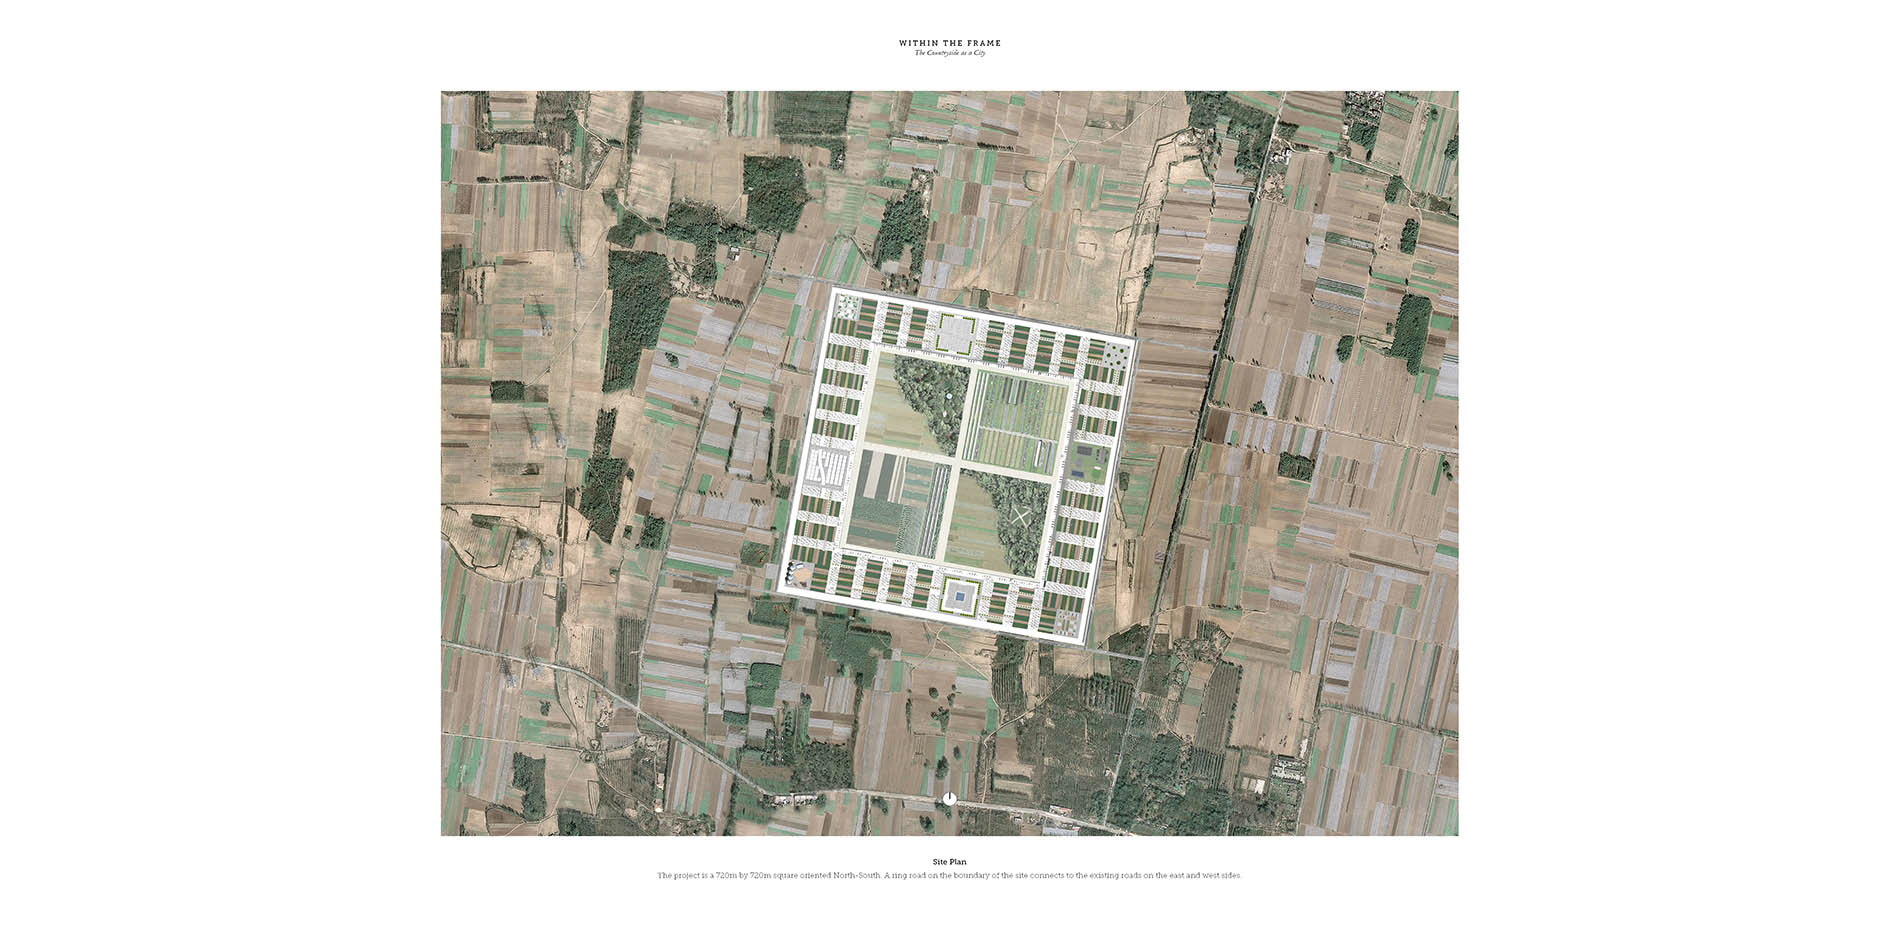 Within the Frame: The Countryside as a City   2015 ASLA Student Awards